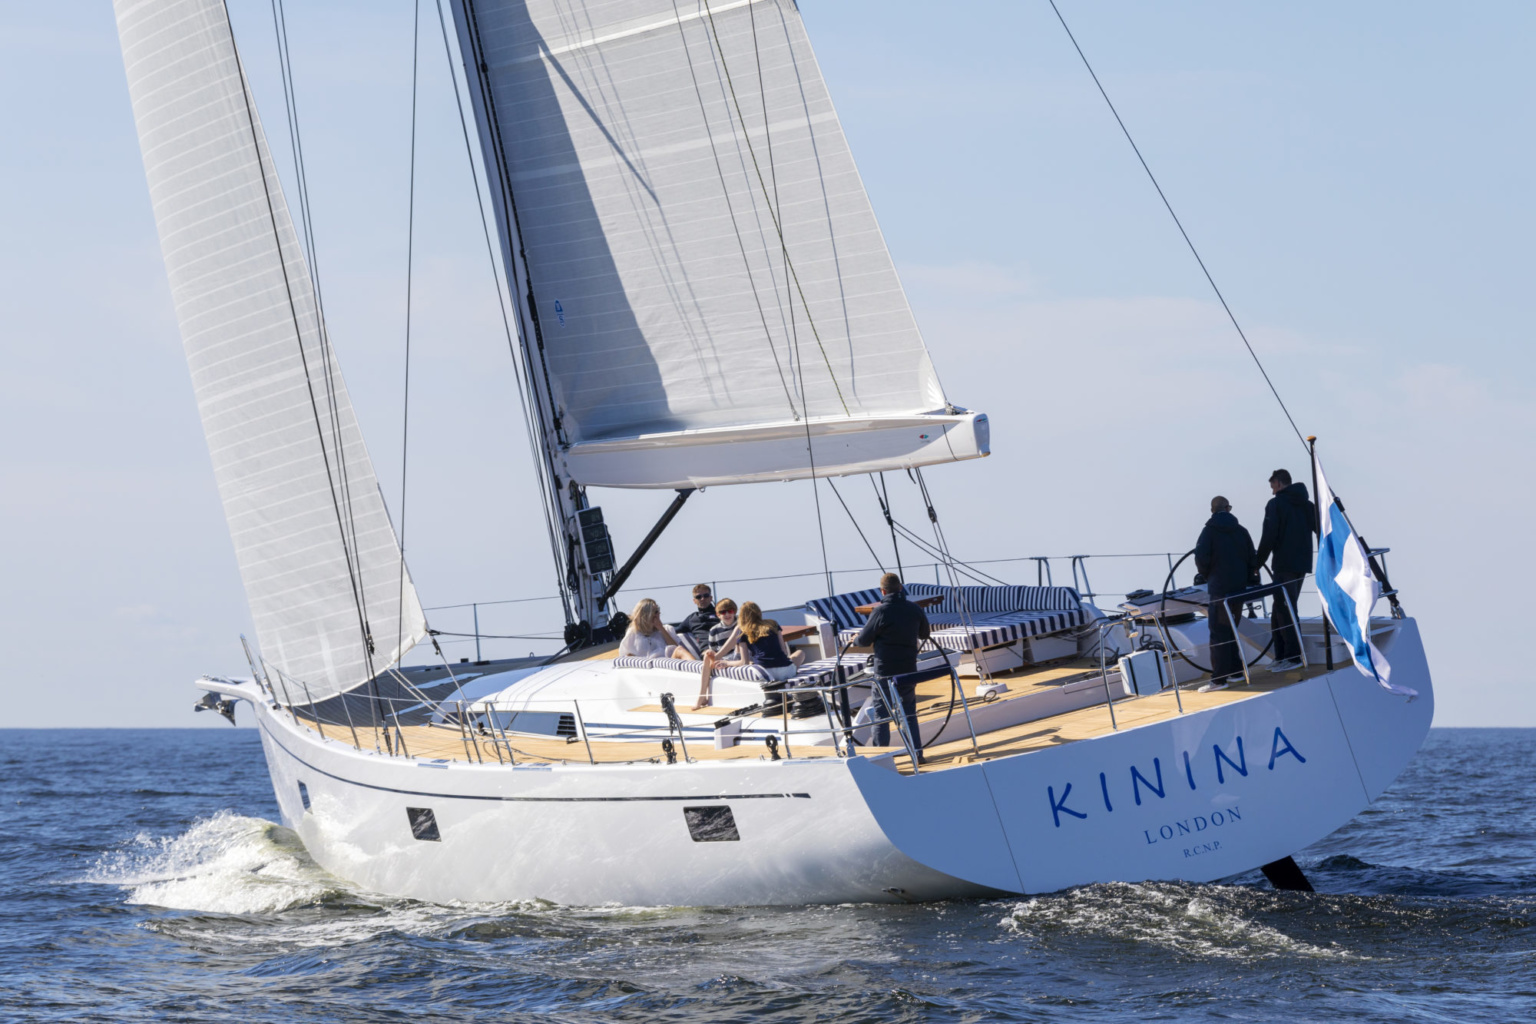 Swan 78 Kinina North Sails photo courtesy of Eva-Stina Kjellman 2018 / Nautor Swan